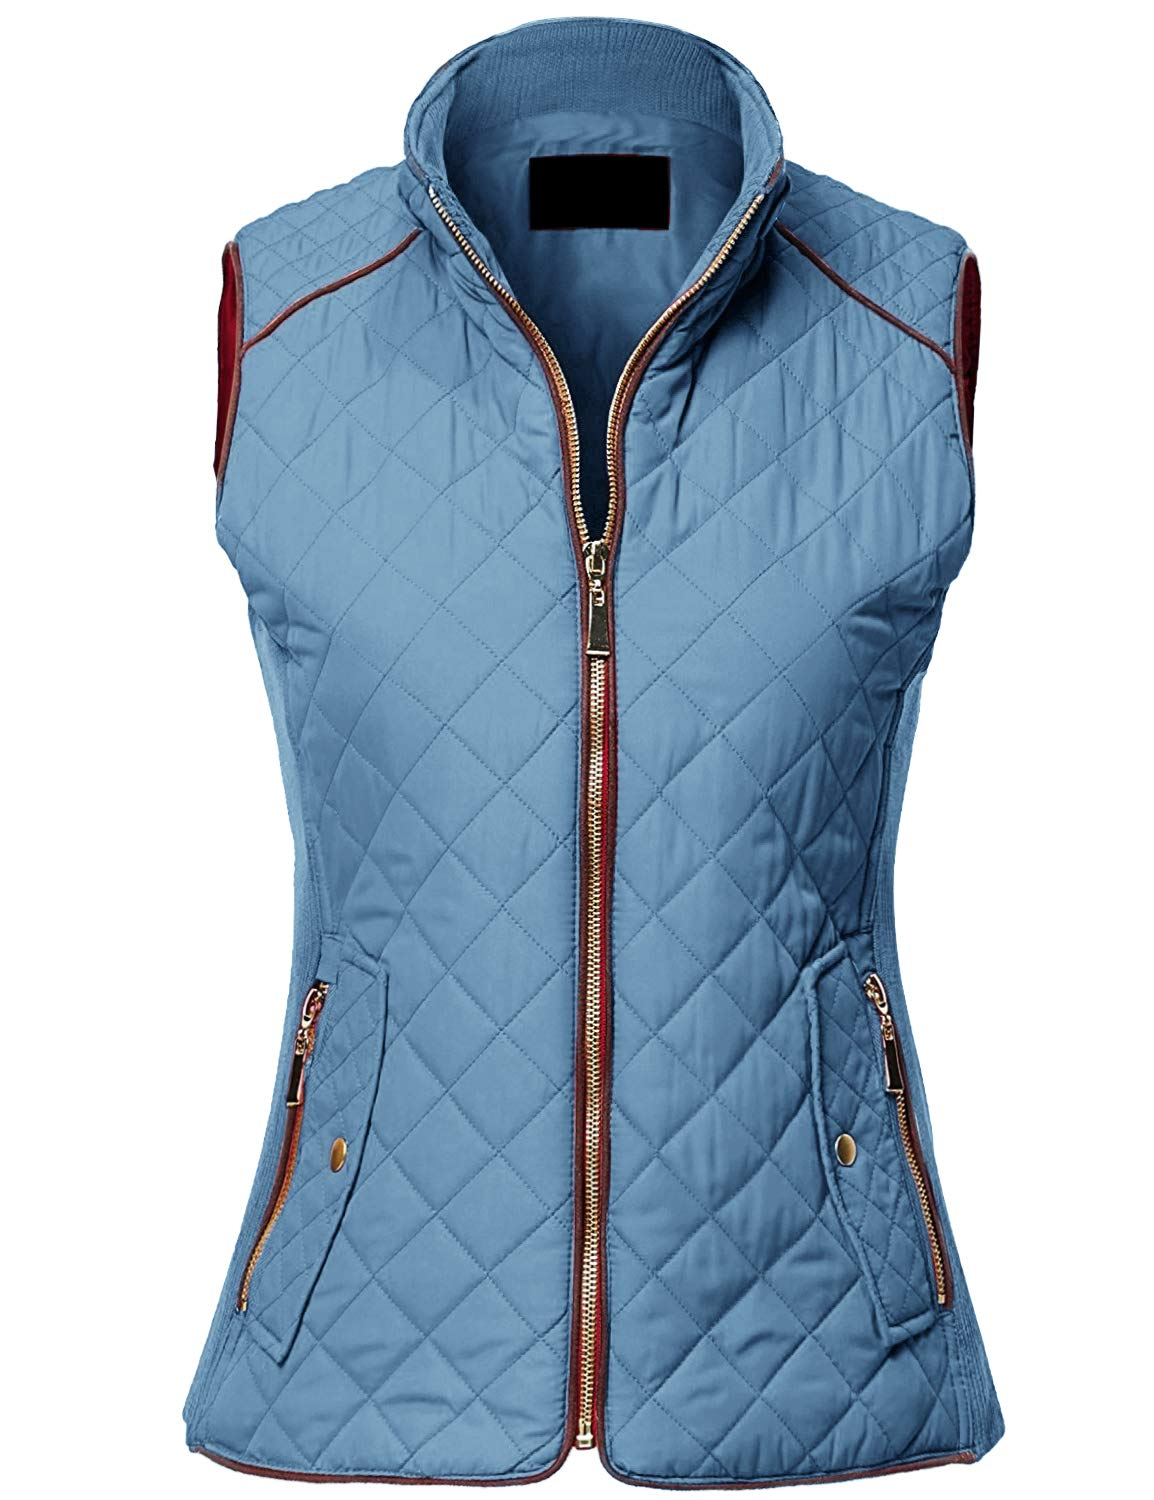 MAYSIX APPAREL Sleeveless Lightweight Zip Up Quilted Padding Vest Jacket for Women Dustyblue L